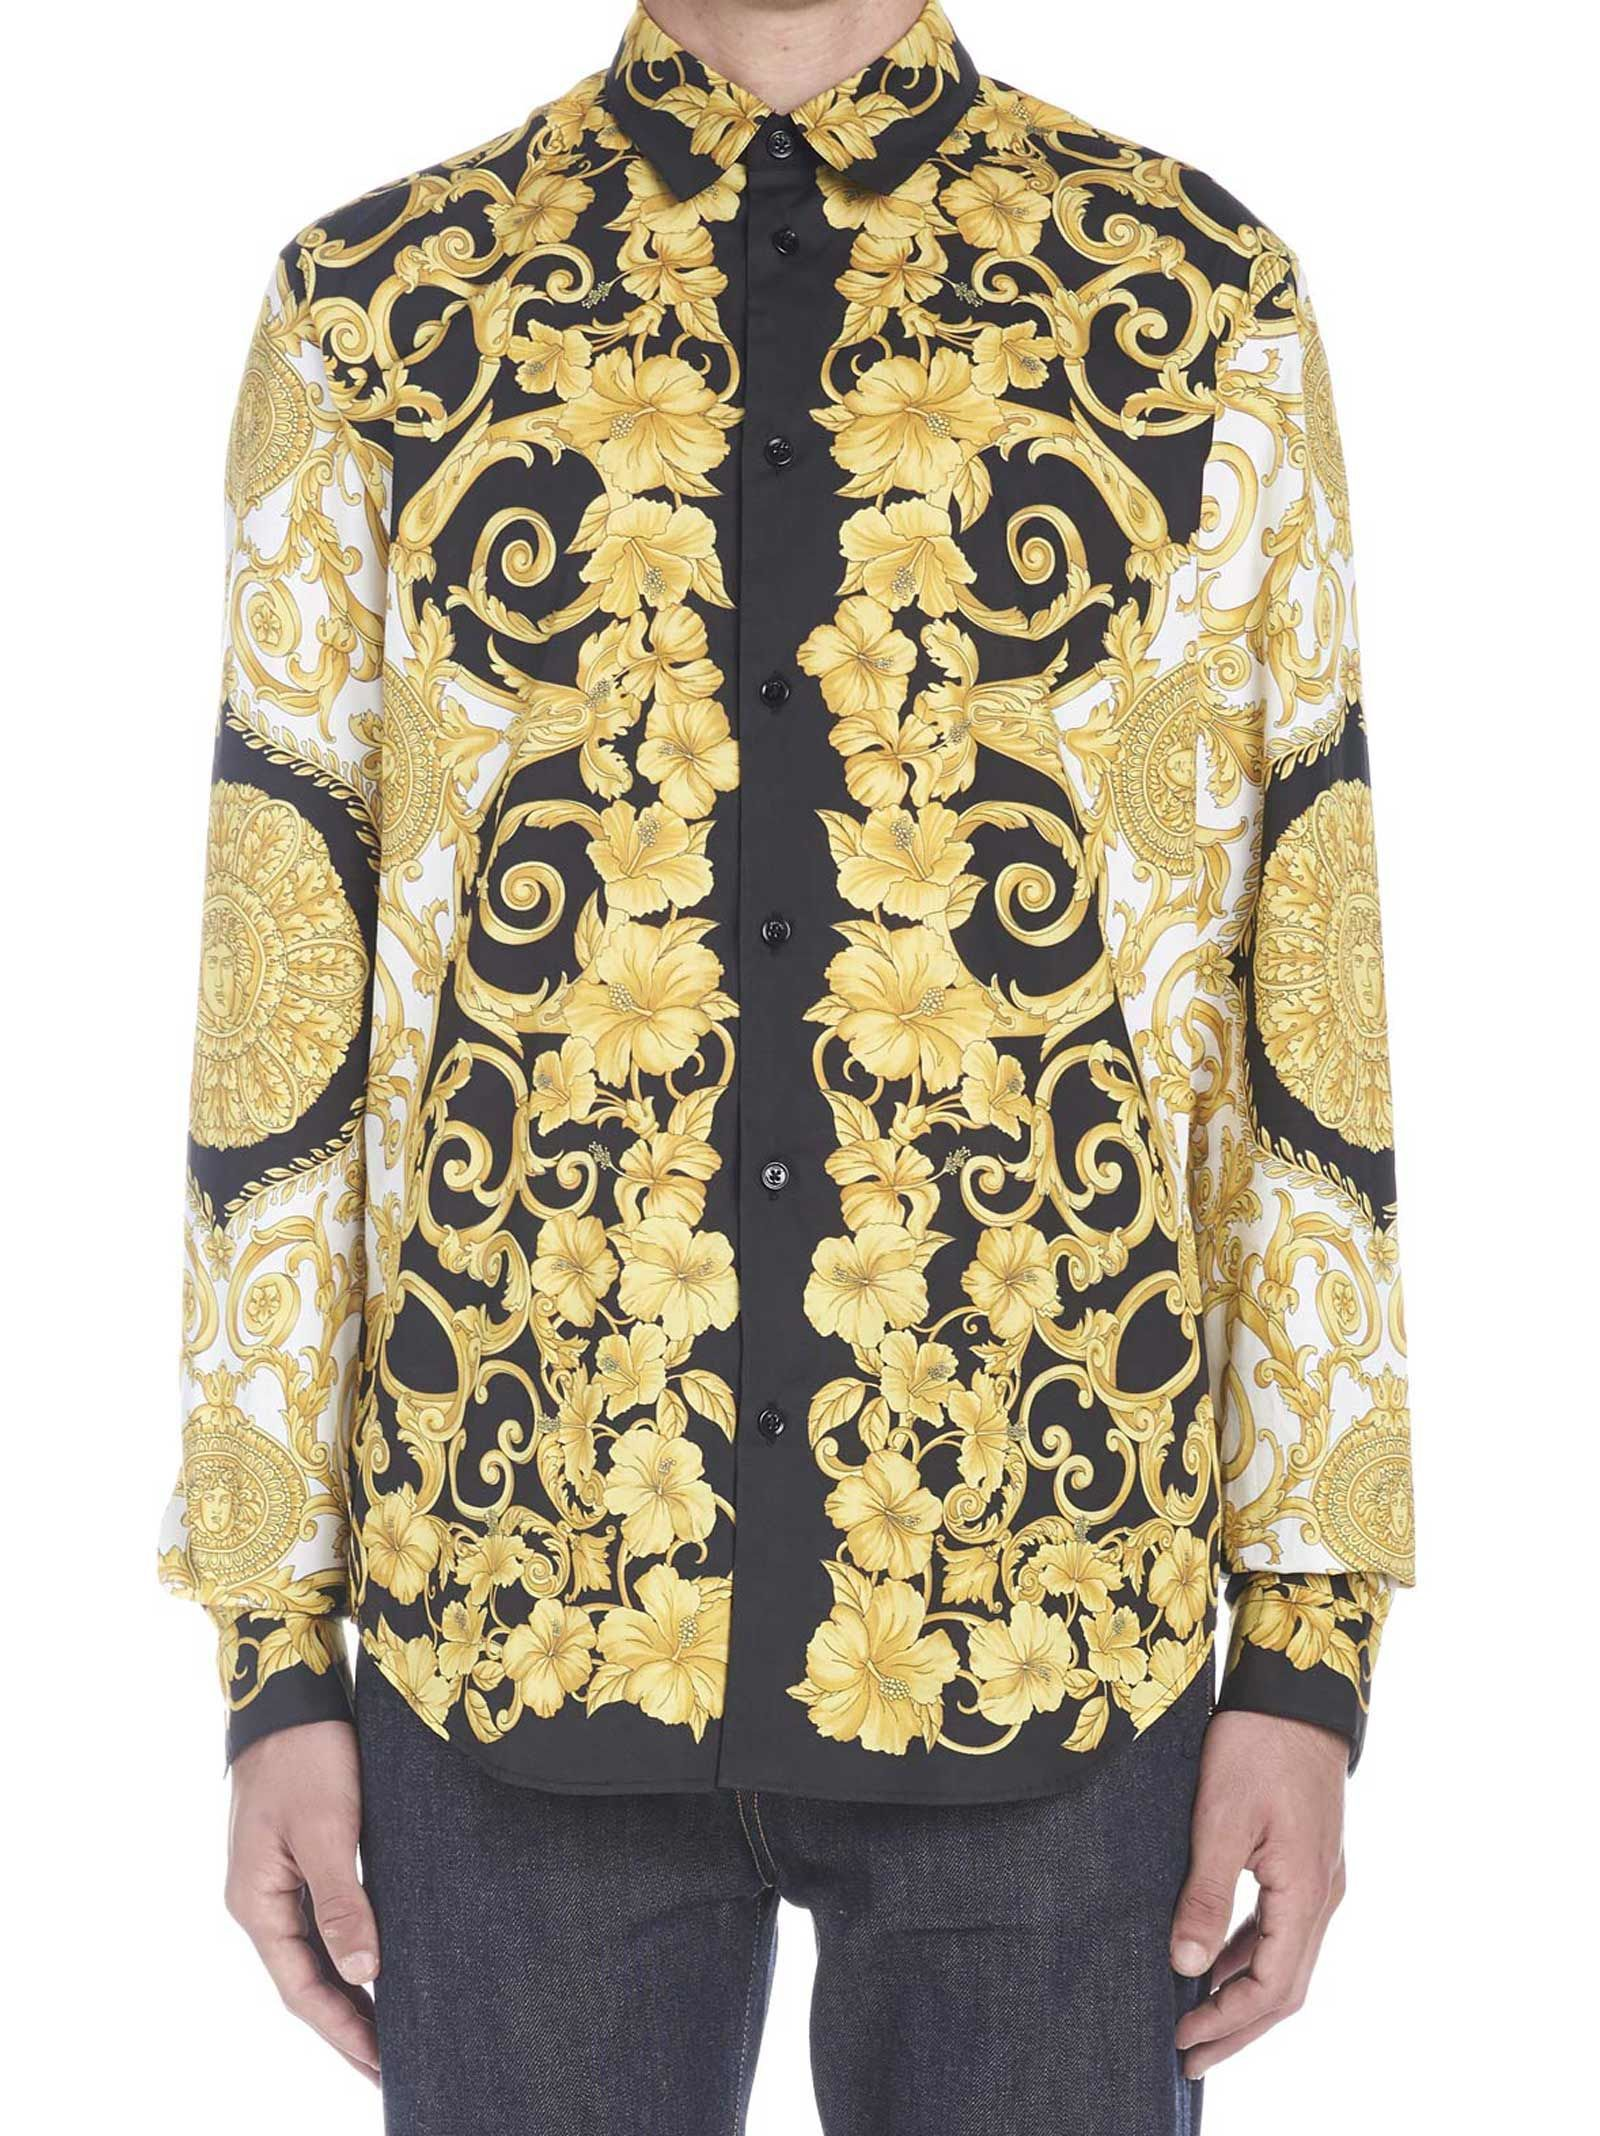 VERSACE SHIRT  #versace #cloth | Versace in 2019 | Versace